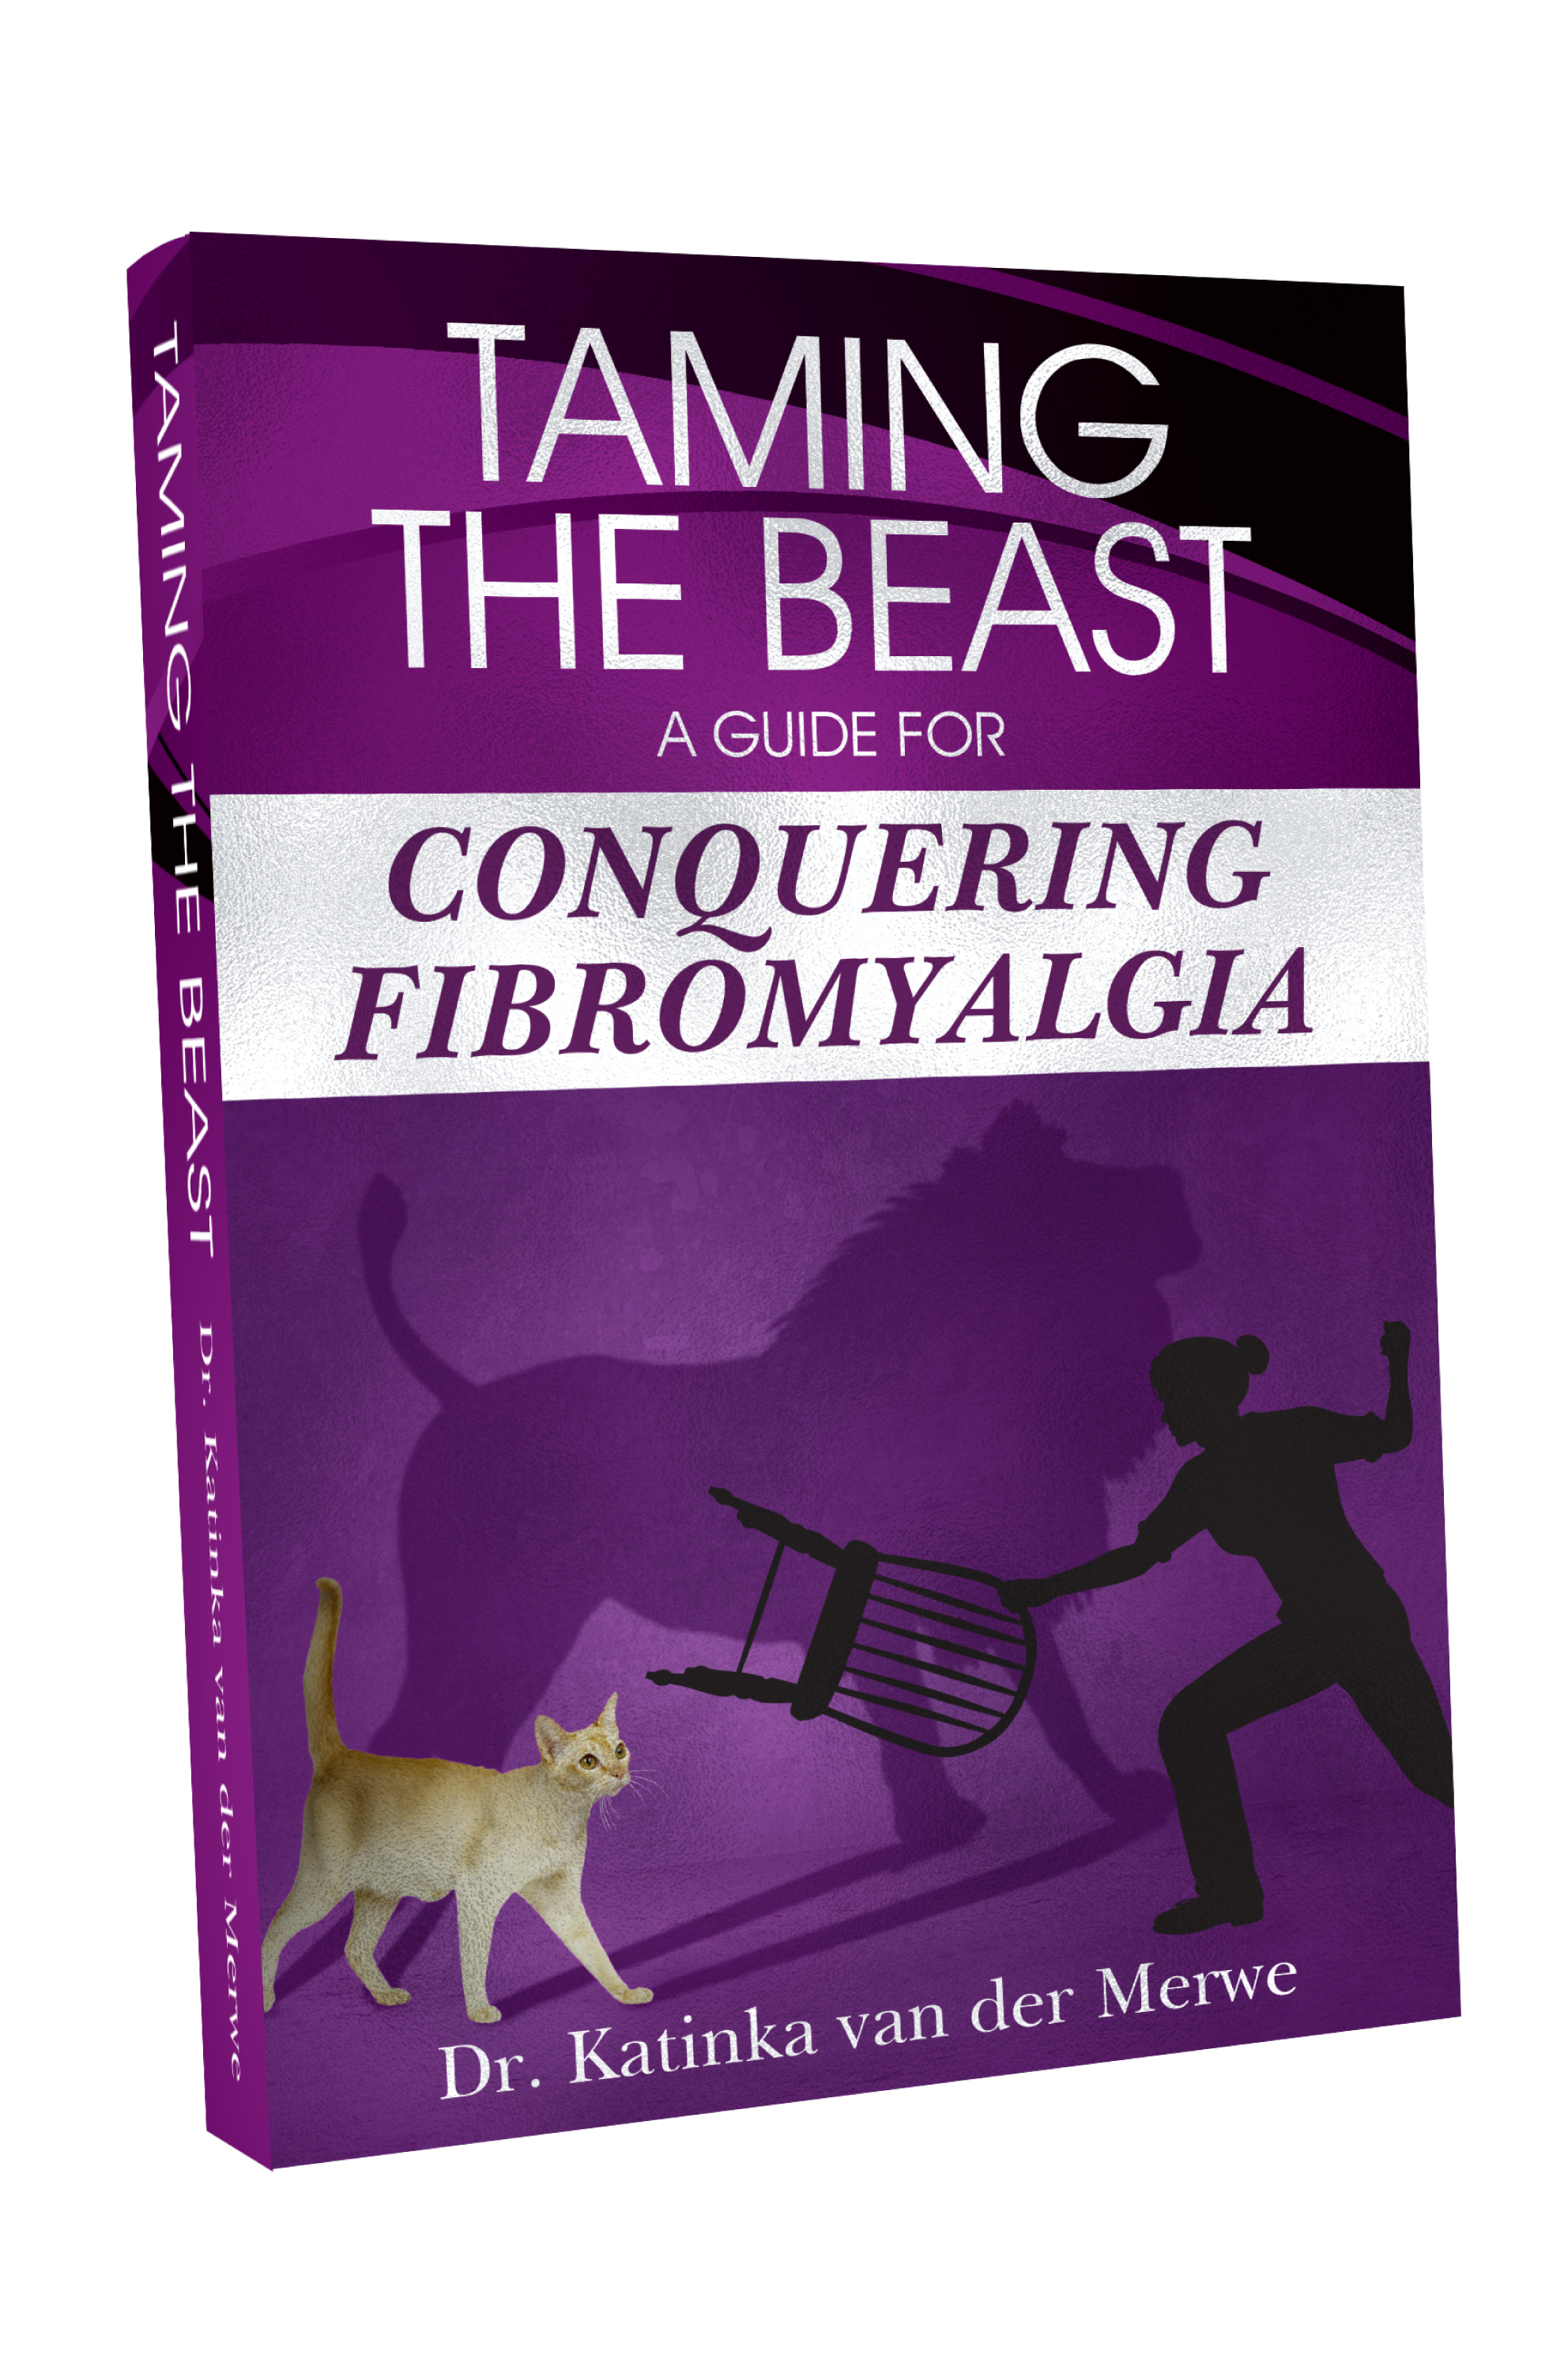 "conquering fibromyalgia - Fibromyalgia is a complicated, vicious beast. It methodically steals your quality of life, robs you of sleep, and submerses you in terrible daily pain and debilitating fatigue.The cause of it is a mystery and it is deemed incurable. The traditional medical approach to this condition is to manage it by taking medications to cover up the pain and symptoms associated with fibromyalgia. Van de Merwe discusses the role of the nervous system and how malfunction causes fibromyalgia.Lastly, she highlights positive actions patients can start taking today to help measure and address the neurological, physical, and chemical symptoms associated with fibromyalgia. Dr. Katinka's aim is to help readers conquer this neurologic disorder and ""tame the beast""."